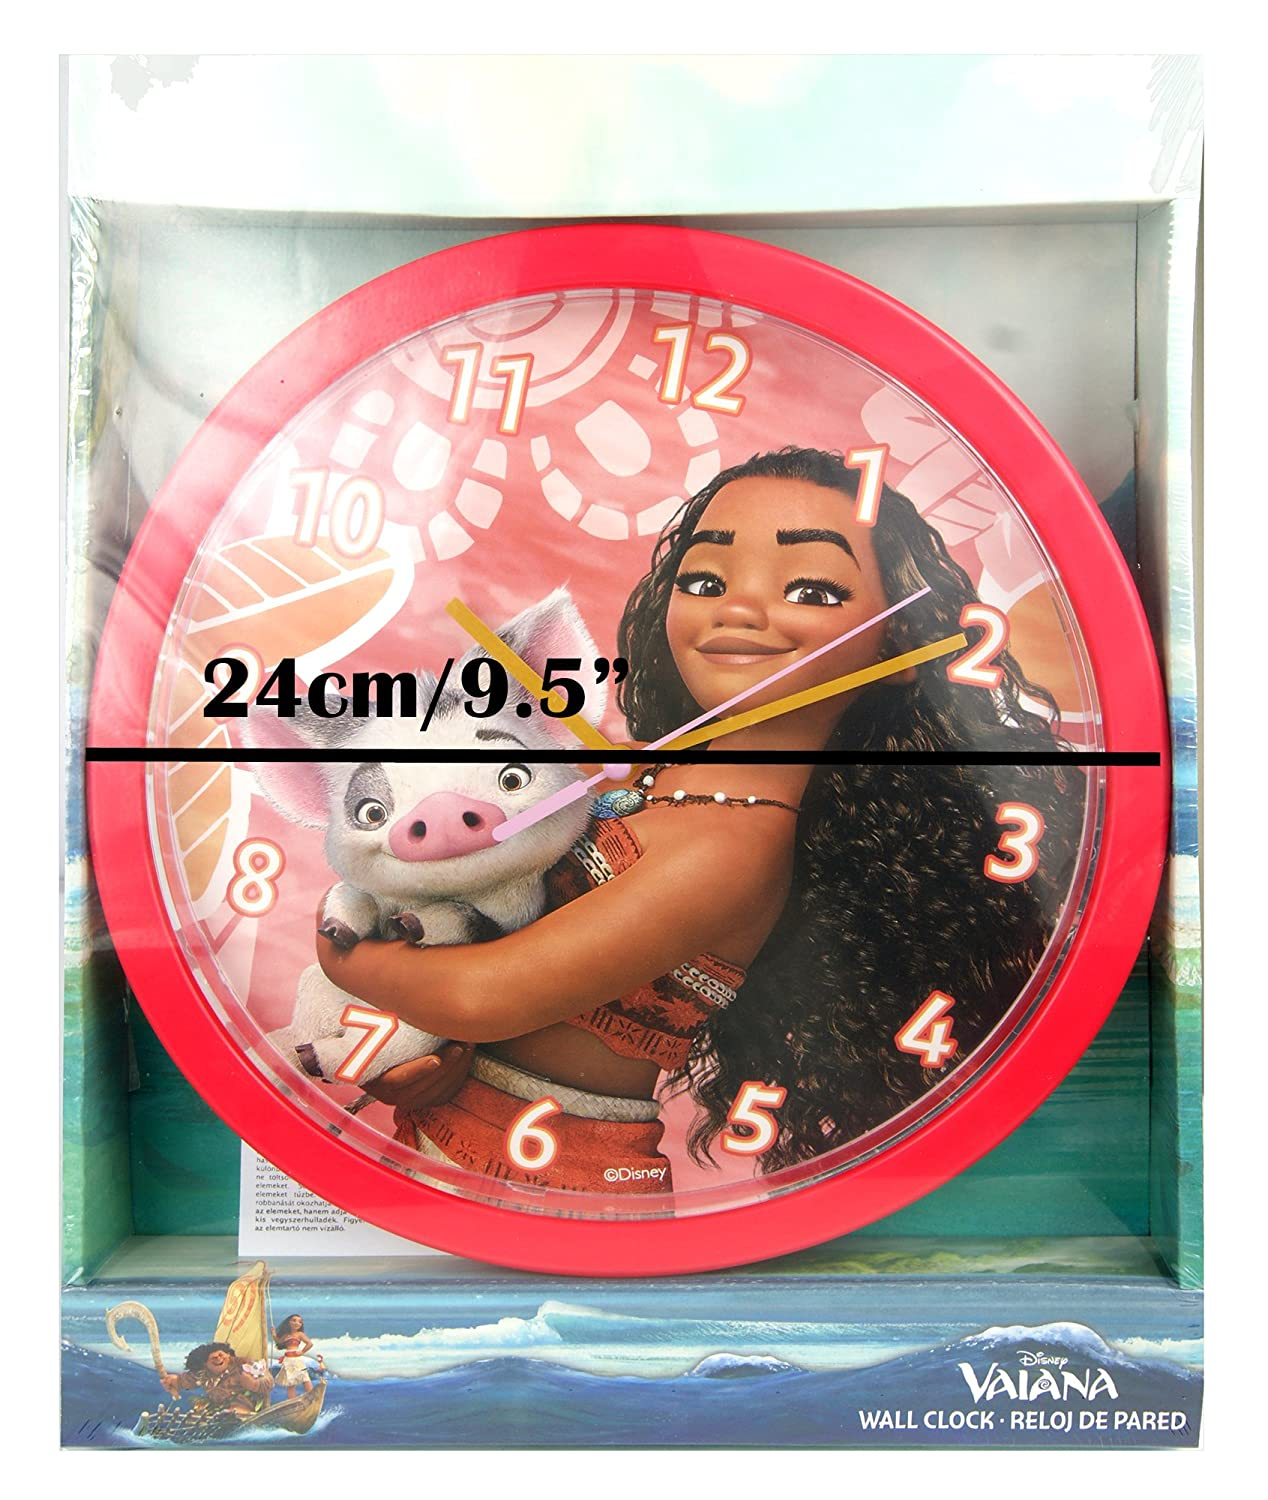 Amazon.com: Childrens Wall Clock, Vaiana Moana Wall Clock, Officially Licensed,Brand: Home & Kitchen